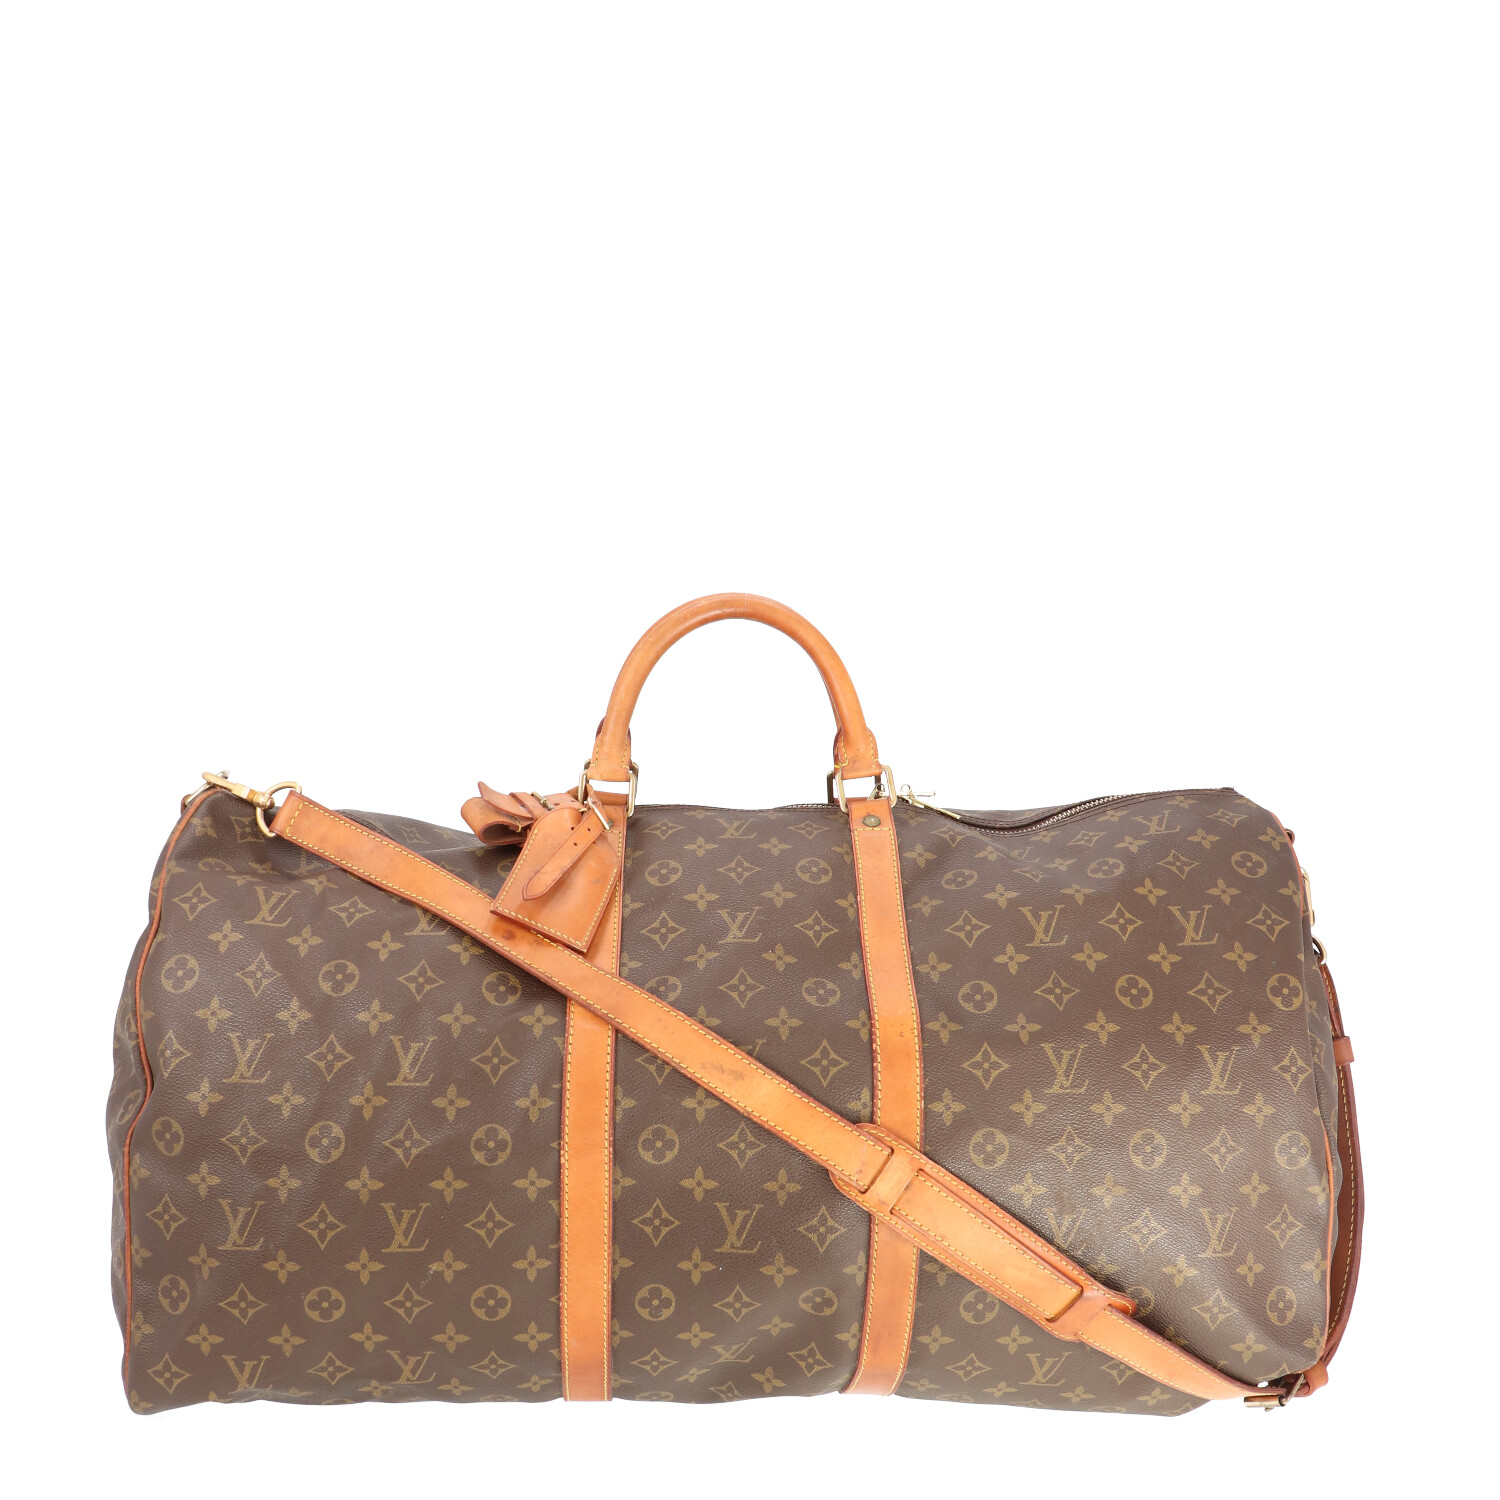 Louis Vuitton Brown Monogram Canvas Keepall Bandouliere 60